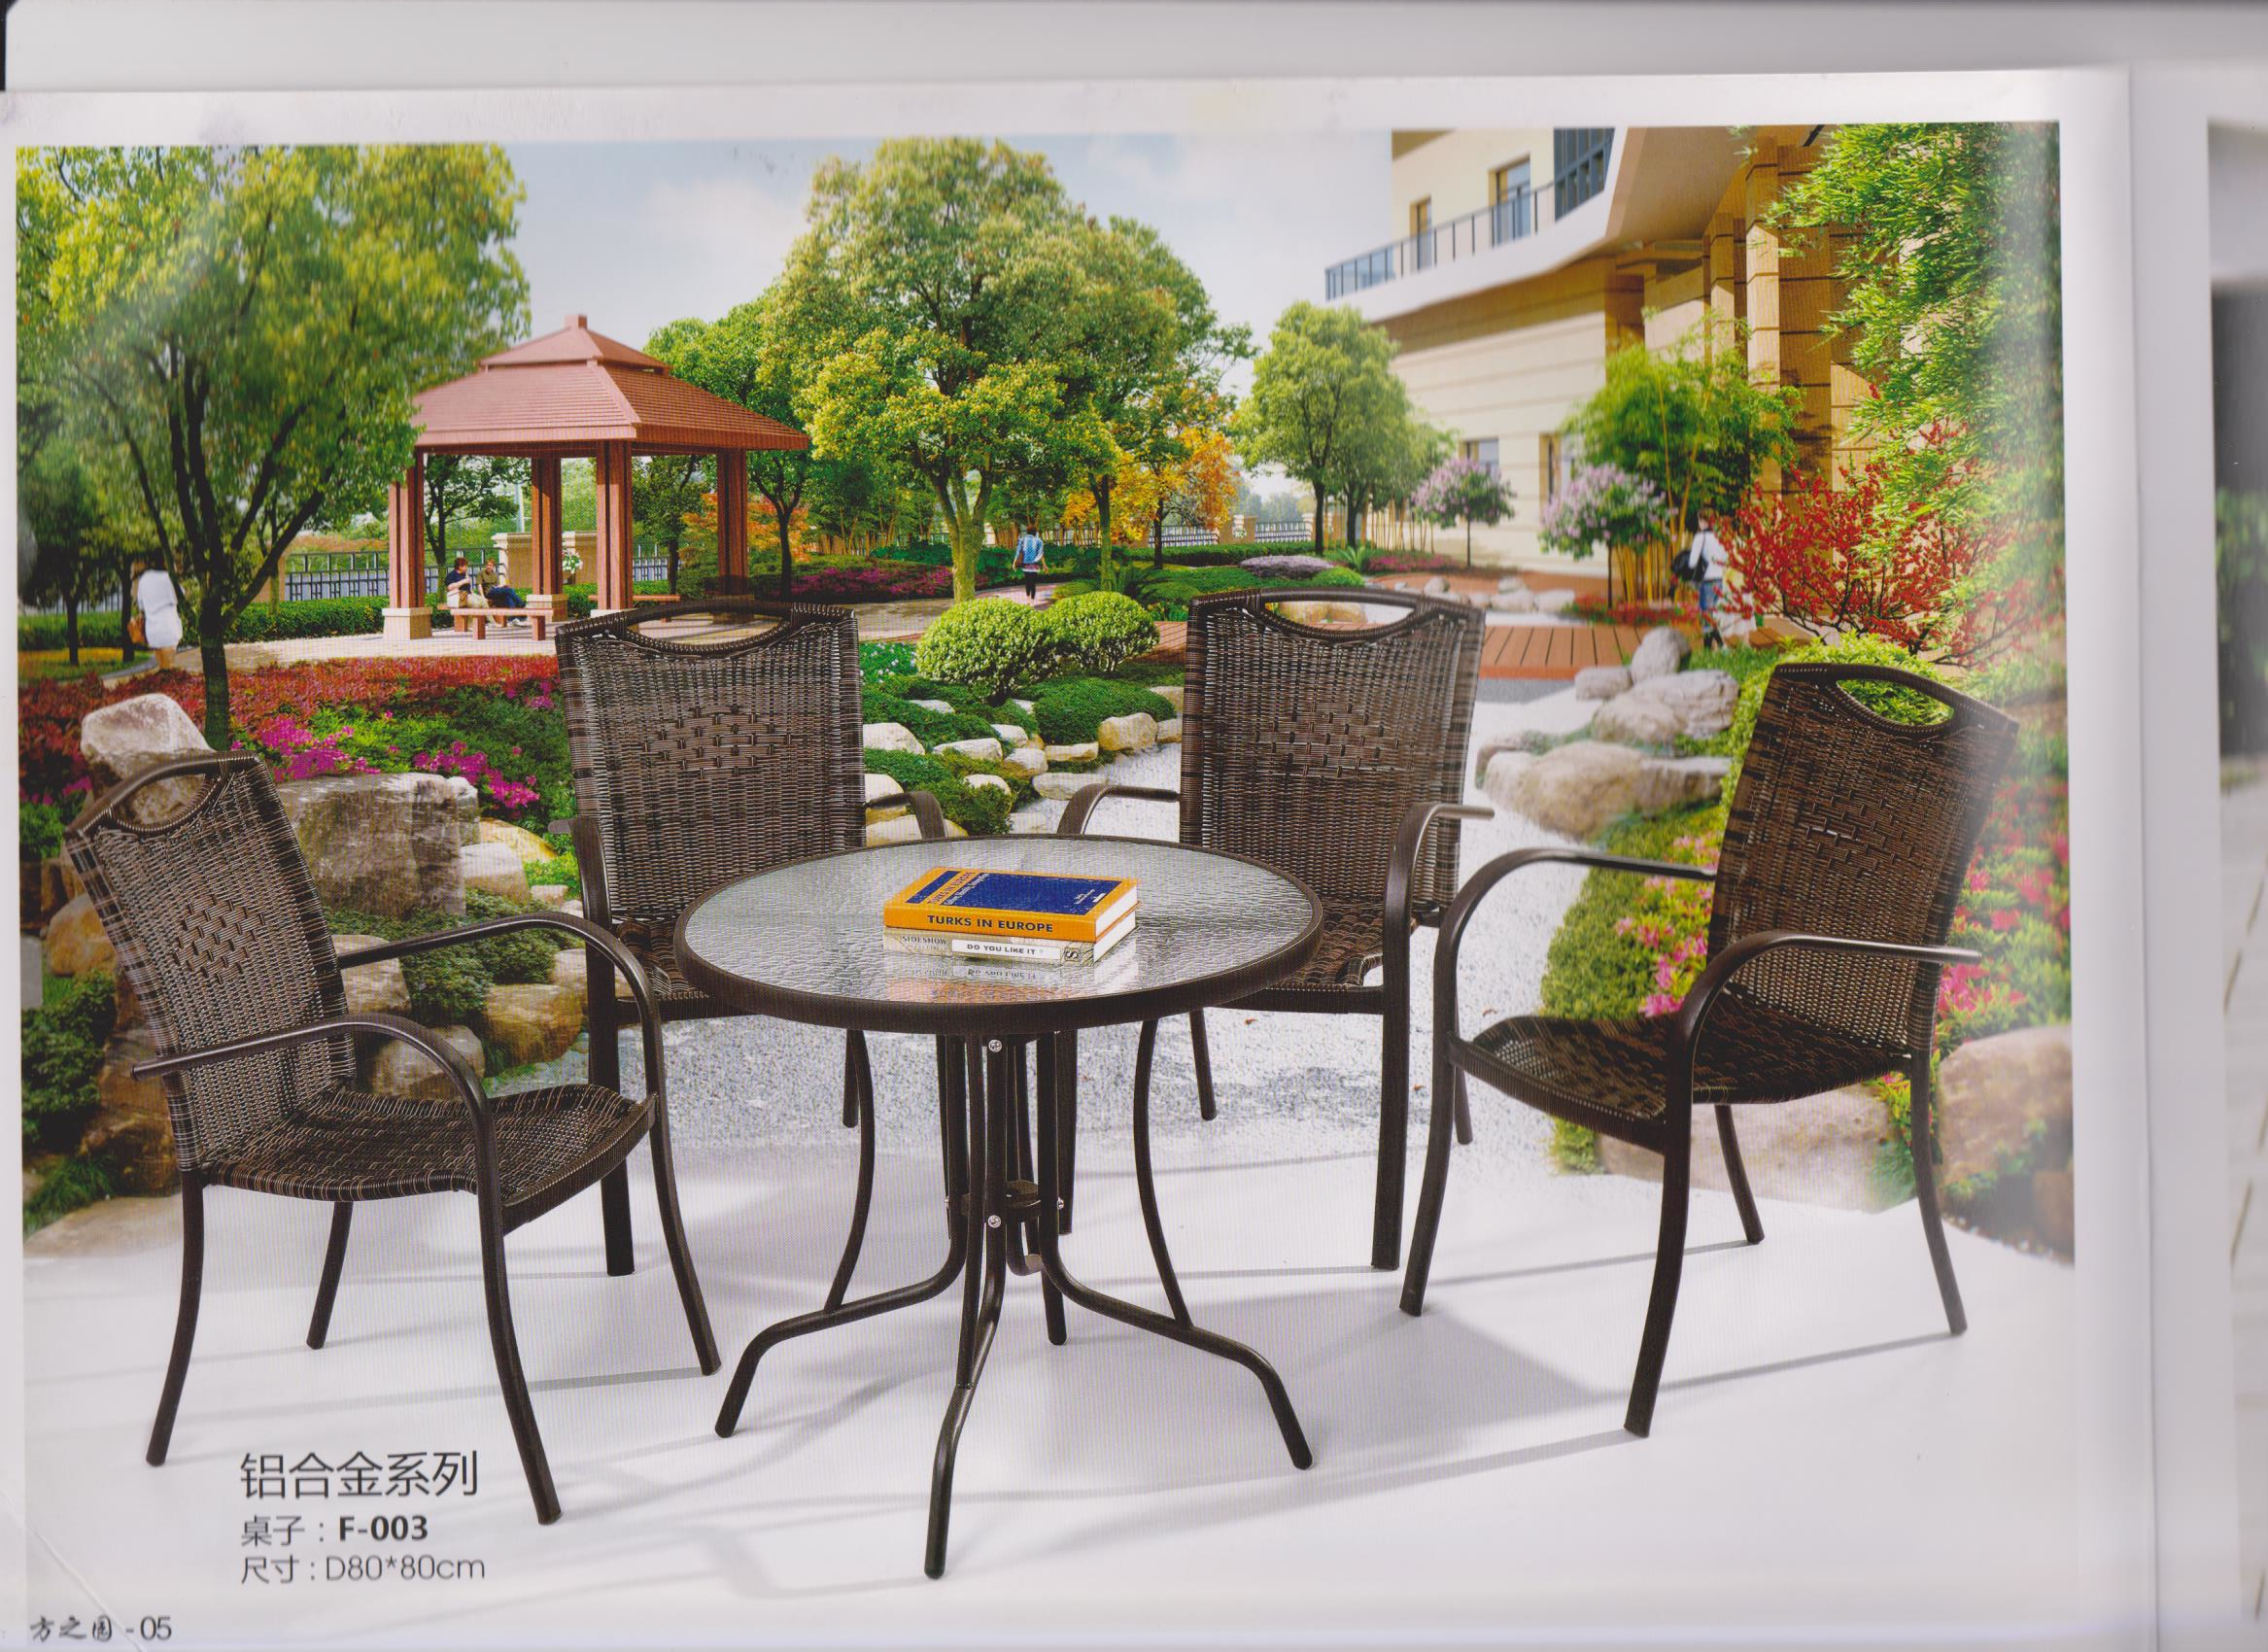 Hotel and contract furniture garden outdoor 1 vital office for Contract outdoor furniture